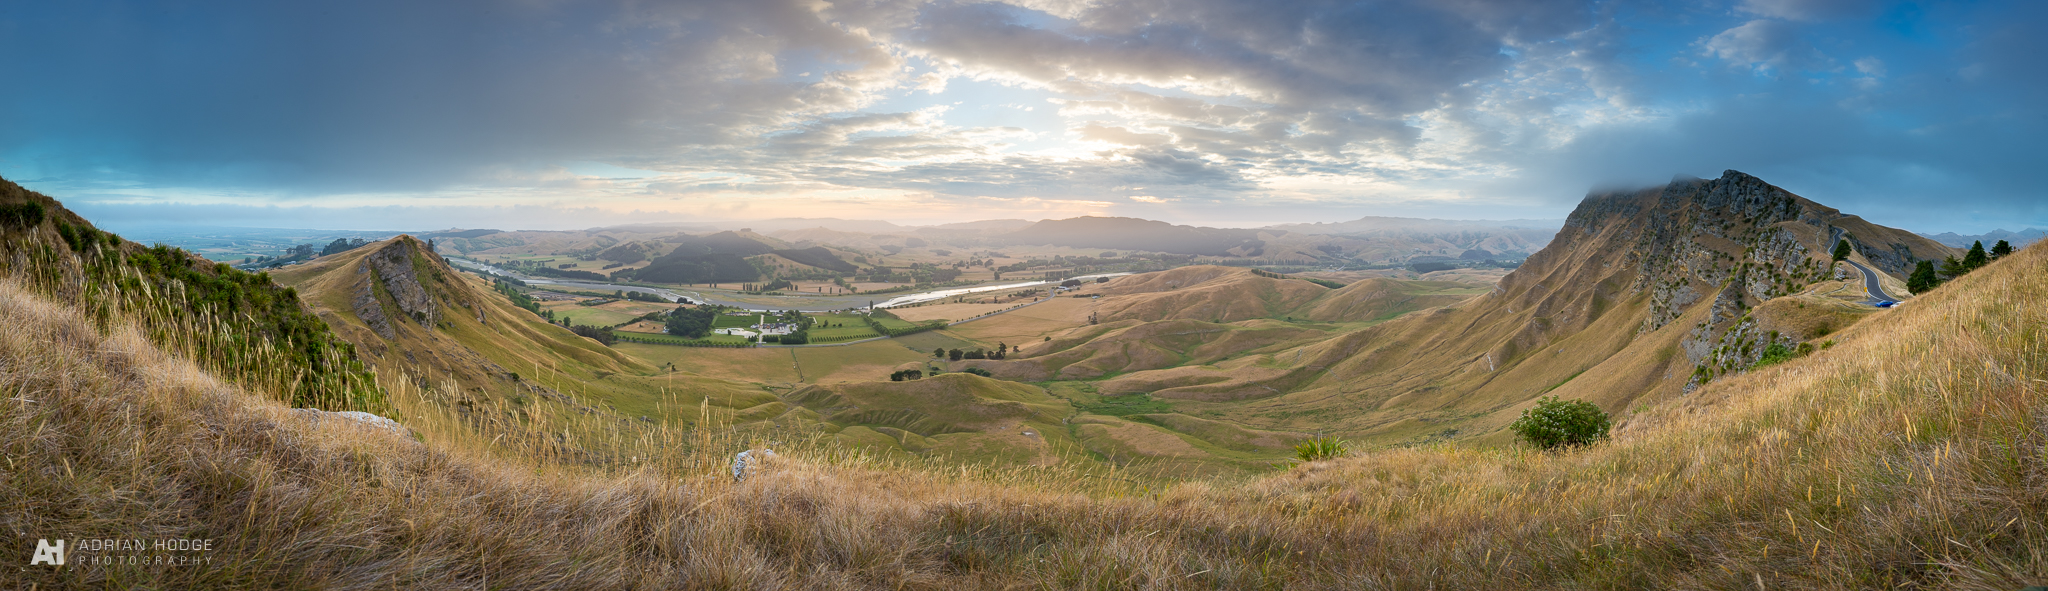 A massive 39 frame HDR panorama of the expansive view from Te Mata Peak